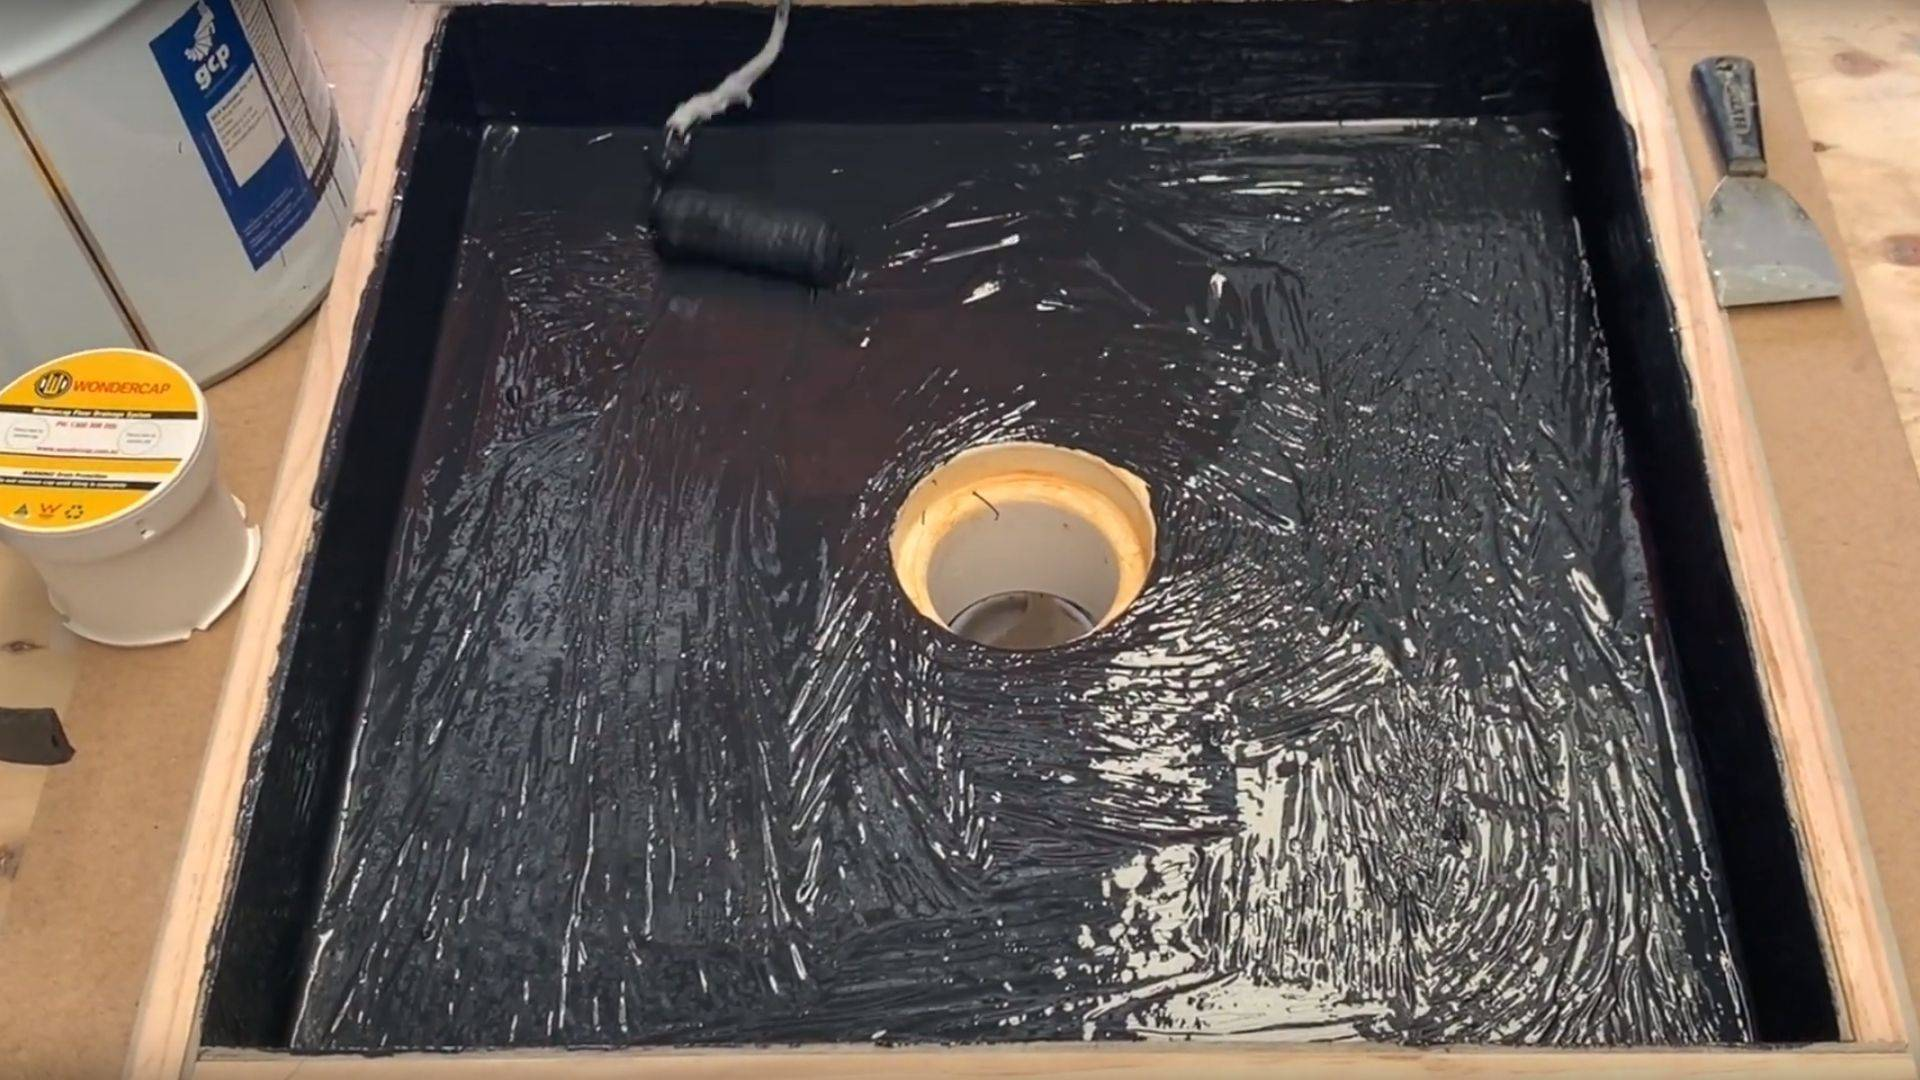 How to waterproof your shower drain and puddle flange kits for bathroom renovations